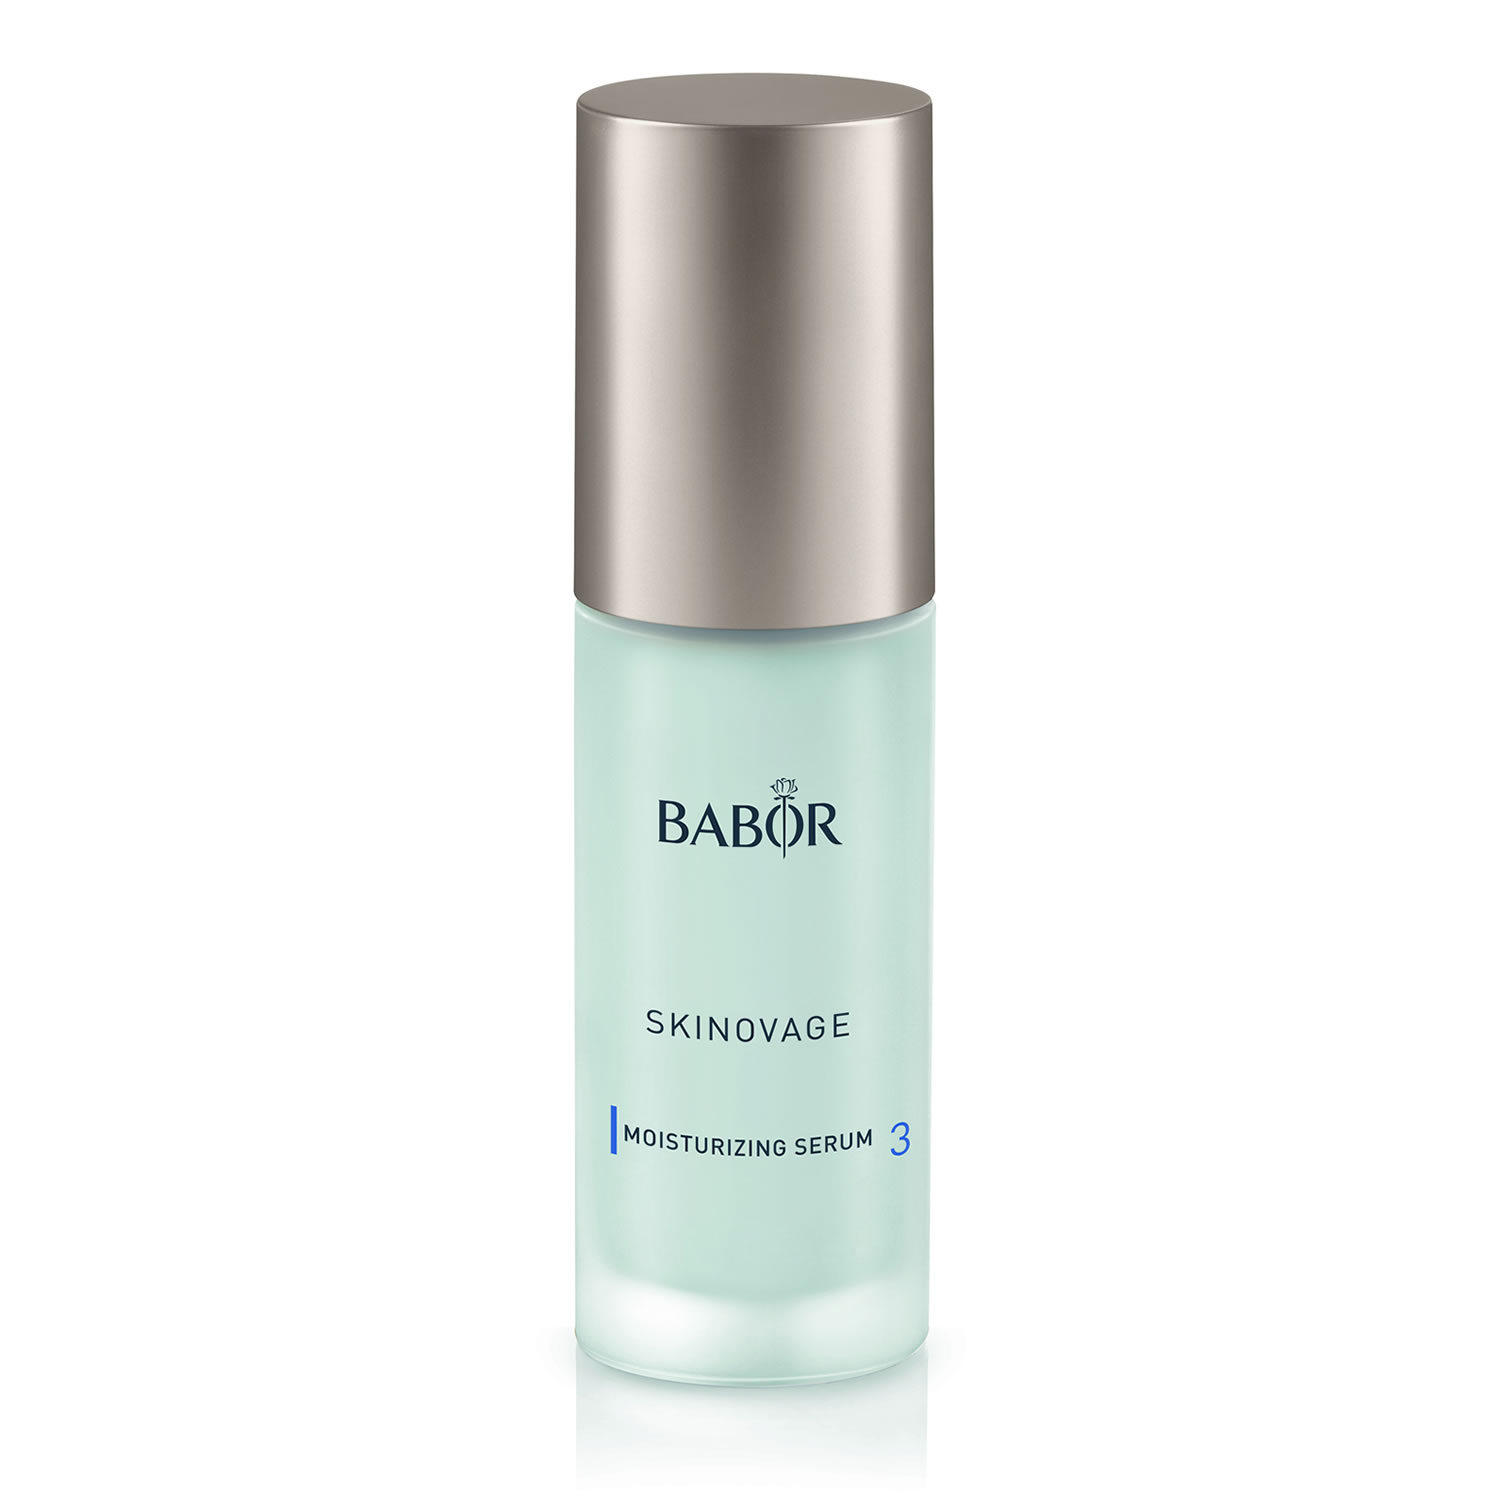 BABOR_SKINOVAGE_MOISTURIZING_SERUM_30_ml